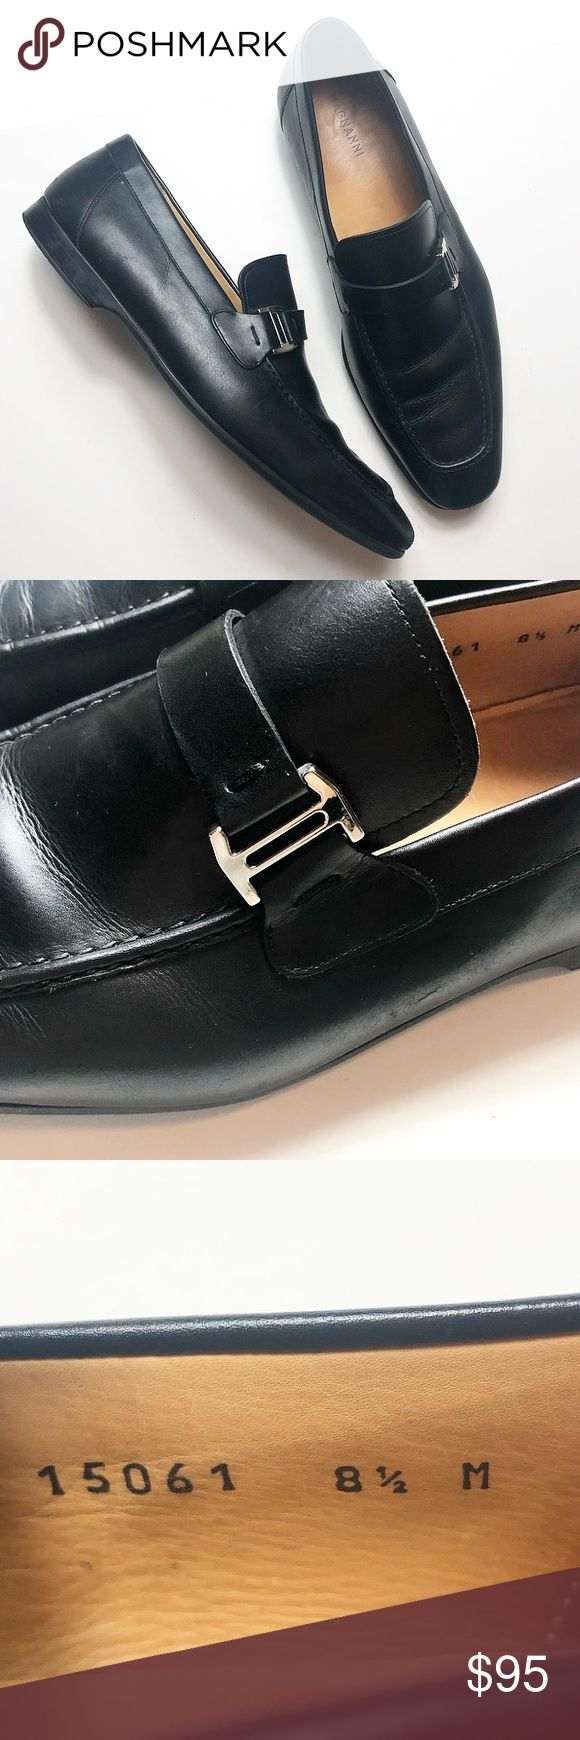 Magnanni Black Slip On Shoes Loafers Size 8.5 Magnanni Slip On Loafers with Silv...